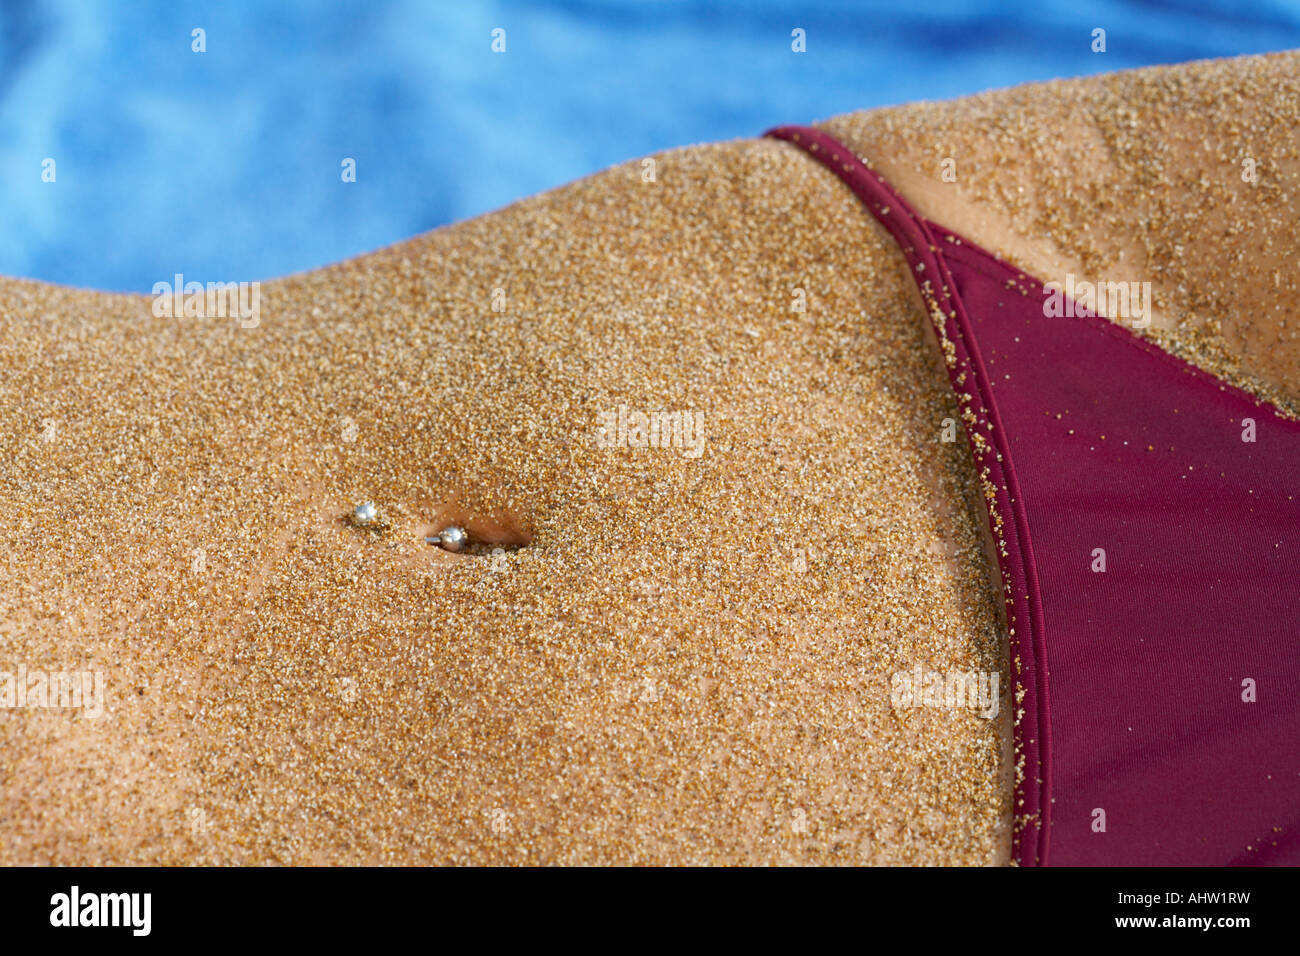 Close up of sandy belly piercing in belly button bikini bottom in section. - Stock Image